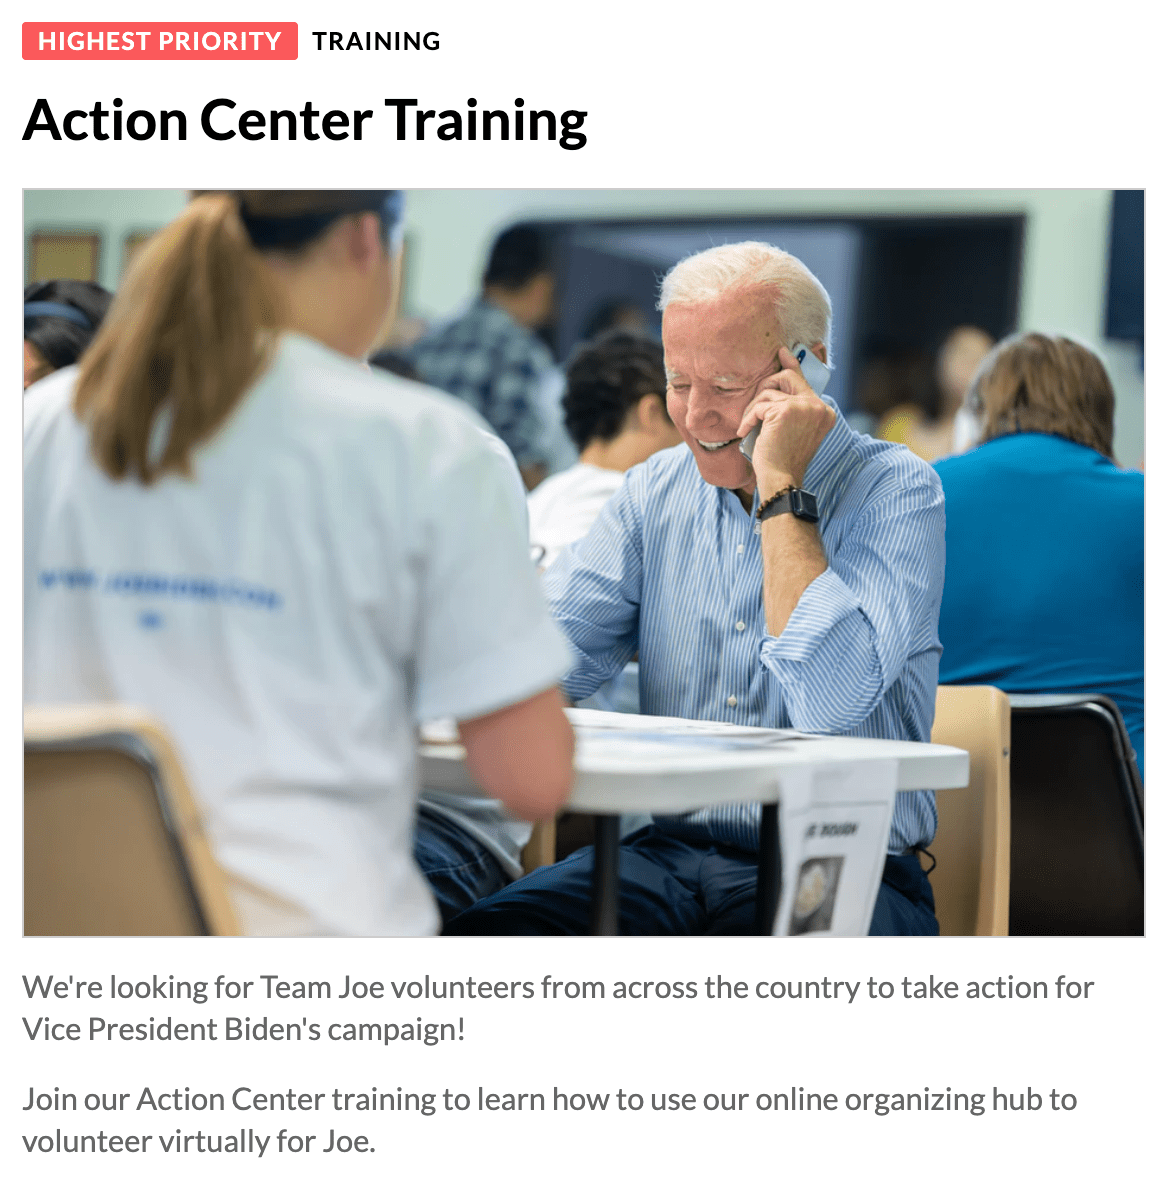 Action center training can be held virtually